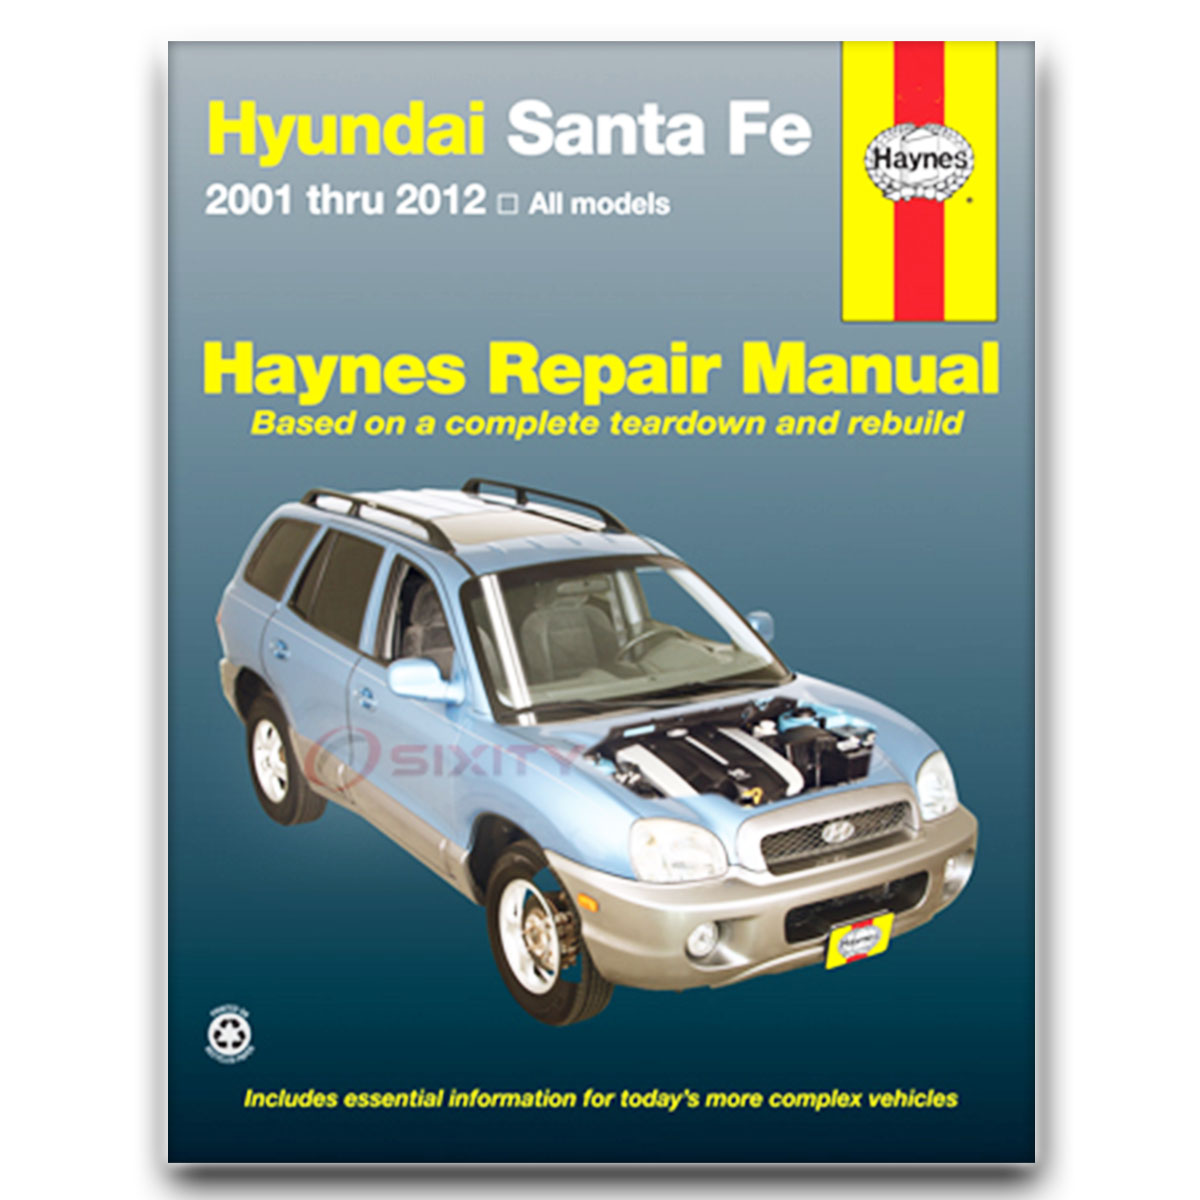 for hyundai santa fe haynes repair manual gls lx base limited se rh ebay com 2001 hyundai santa fe owners manual pdf Hyundai Santa Fe Problem